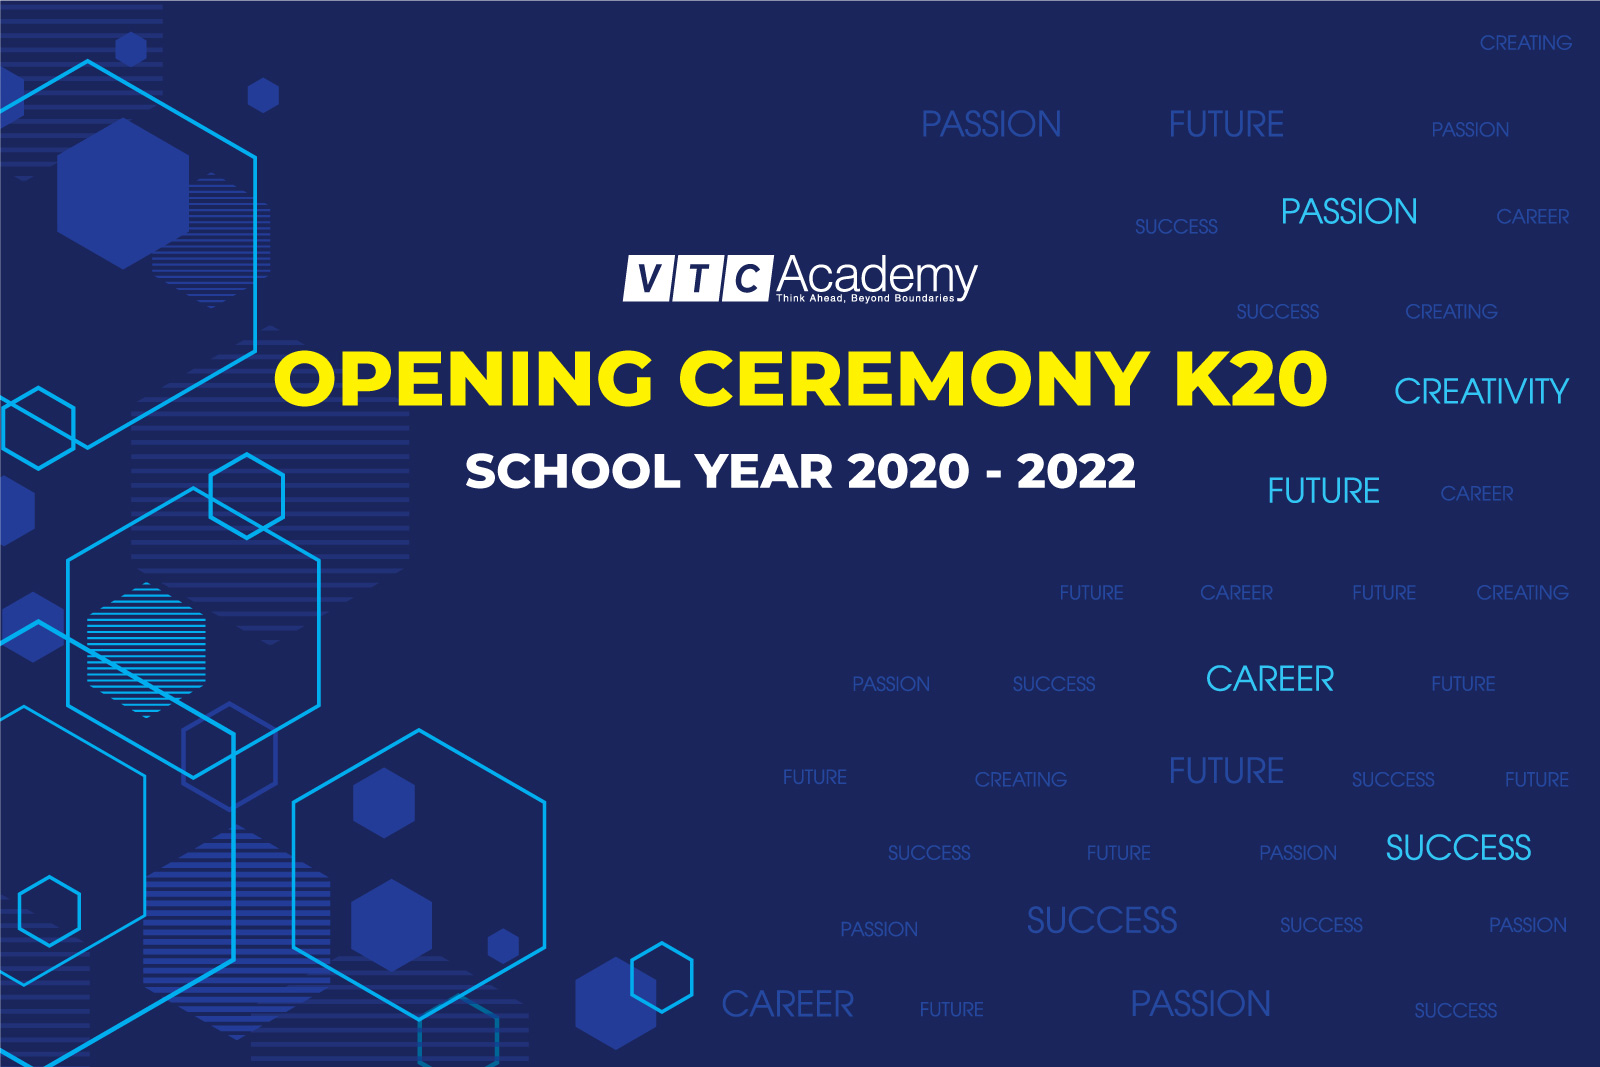 Opening Ceremony K20 | The 2020 – 2022 school year in HCMC